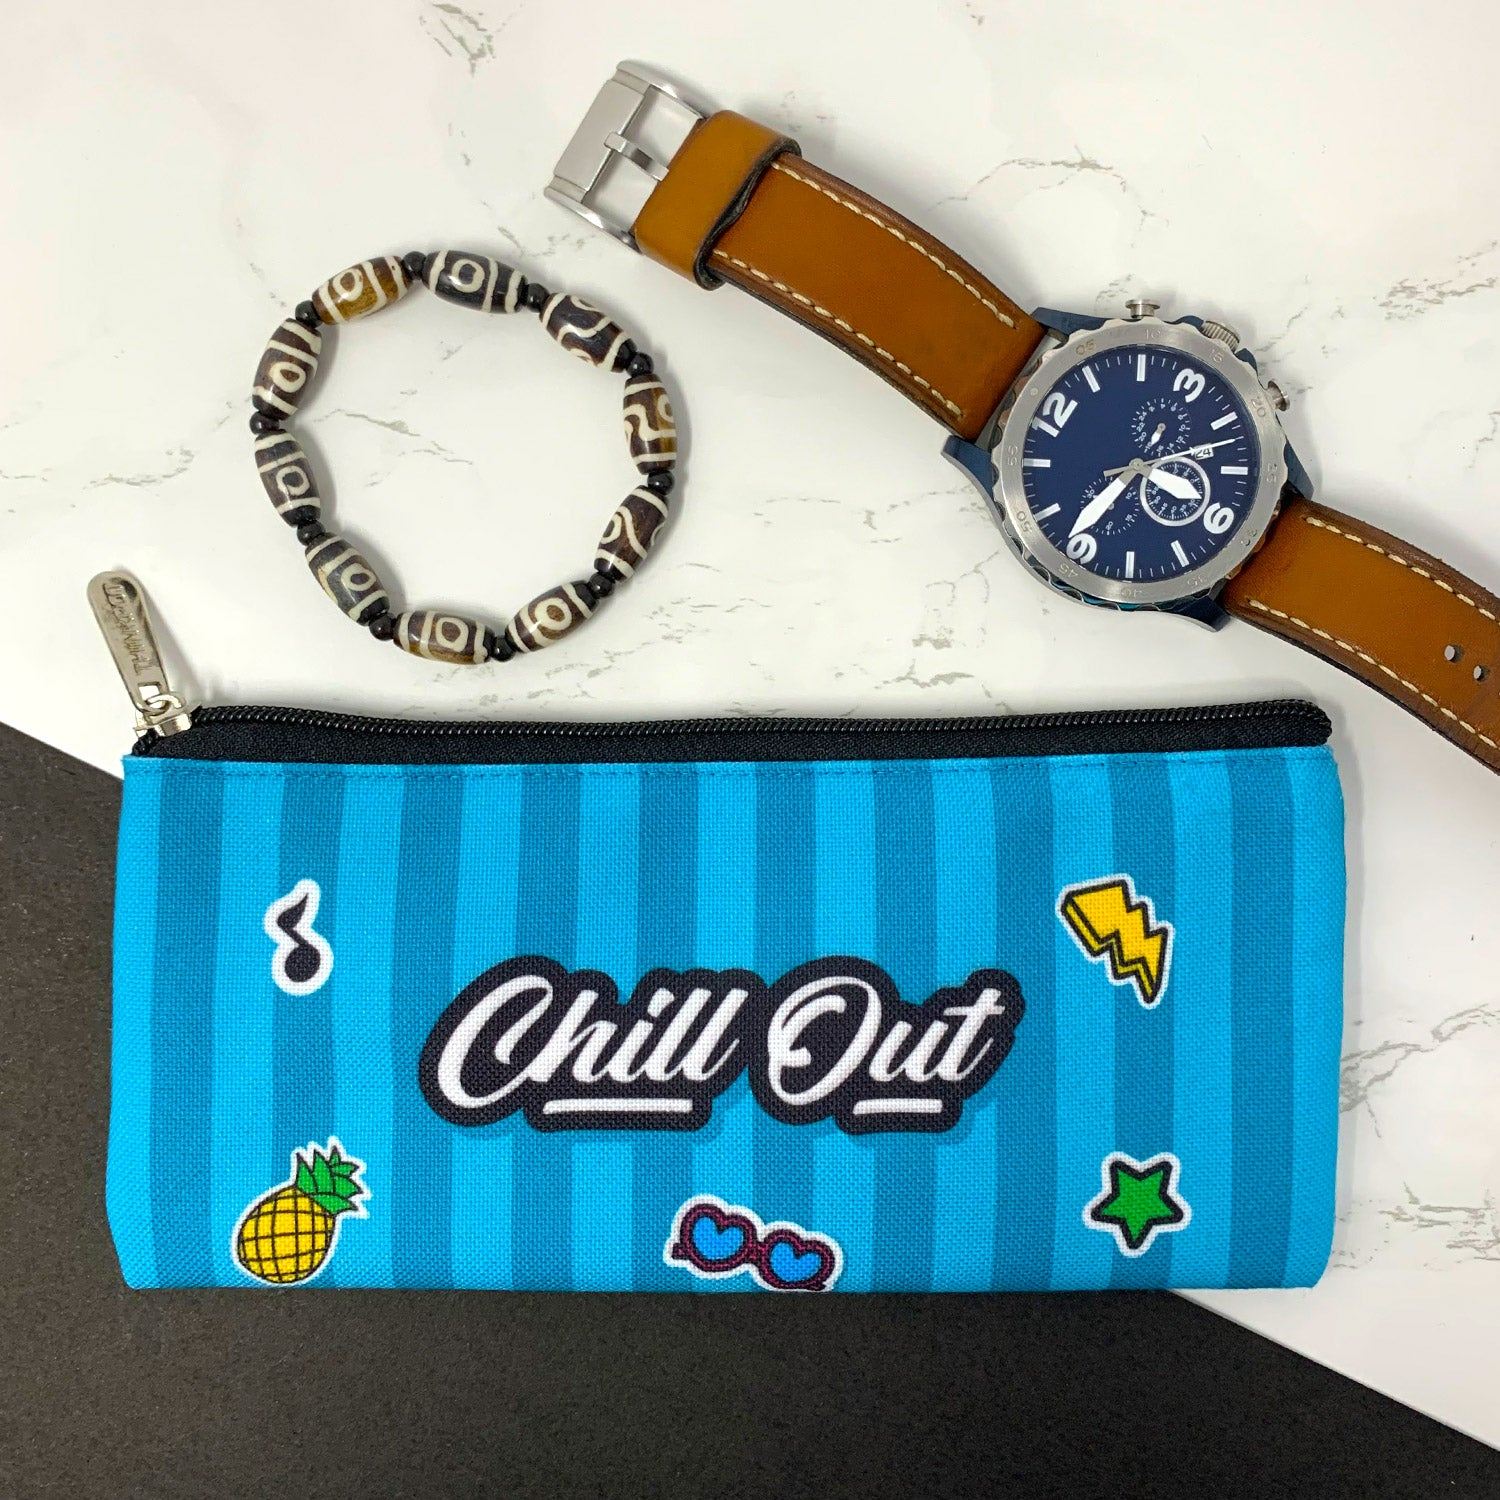 Chill Out Canvas Pencil Pouch